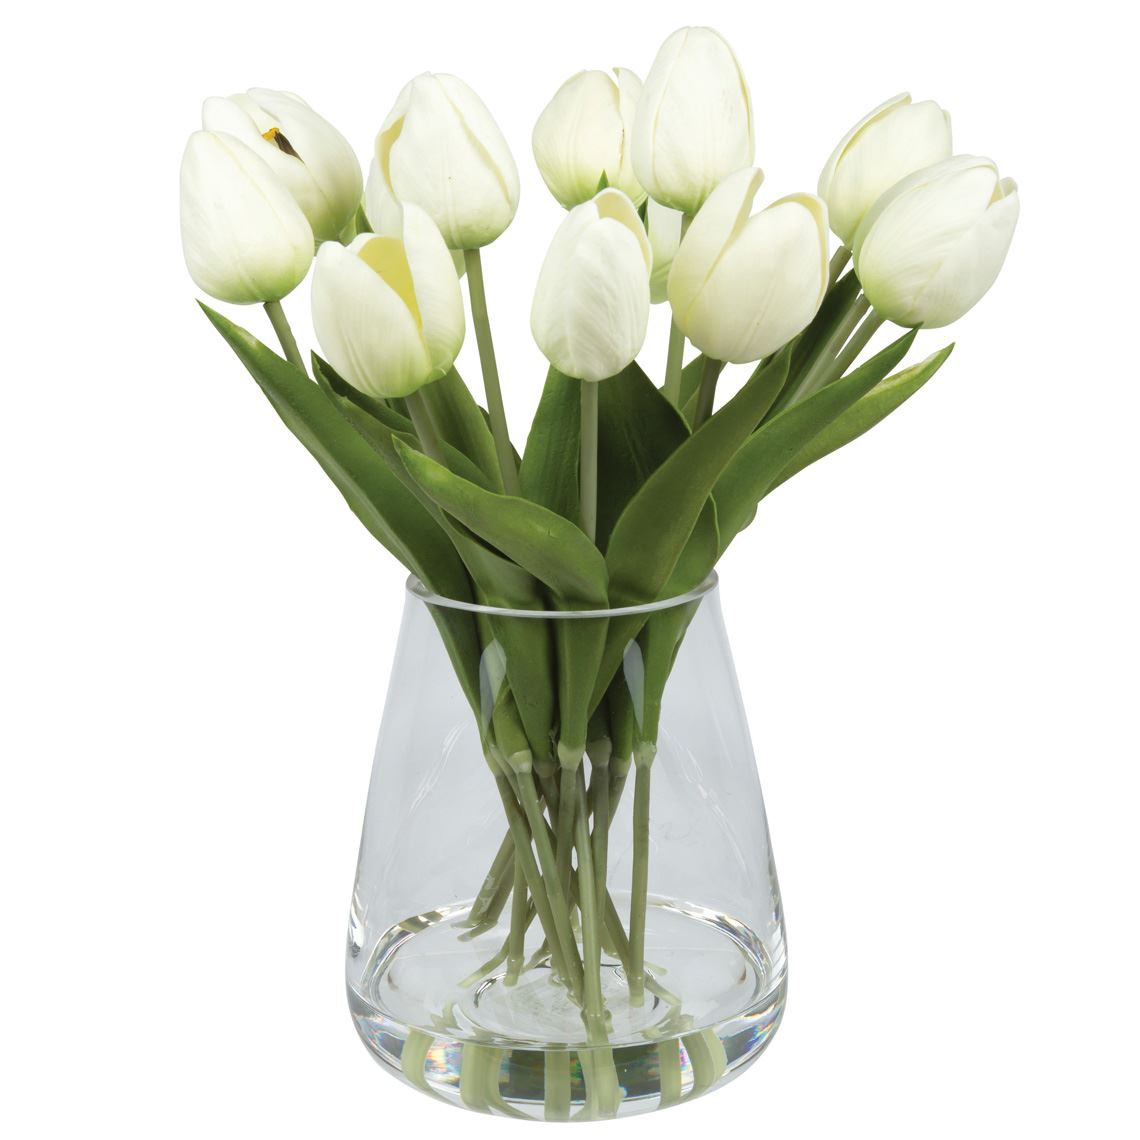 Tulips In Tub Vase Size W 34cm x D 34cm x H 36cm in White Plastic/Glass Freedom by Freedom, a Plants for sale on Style Sourcebook